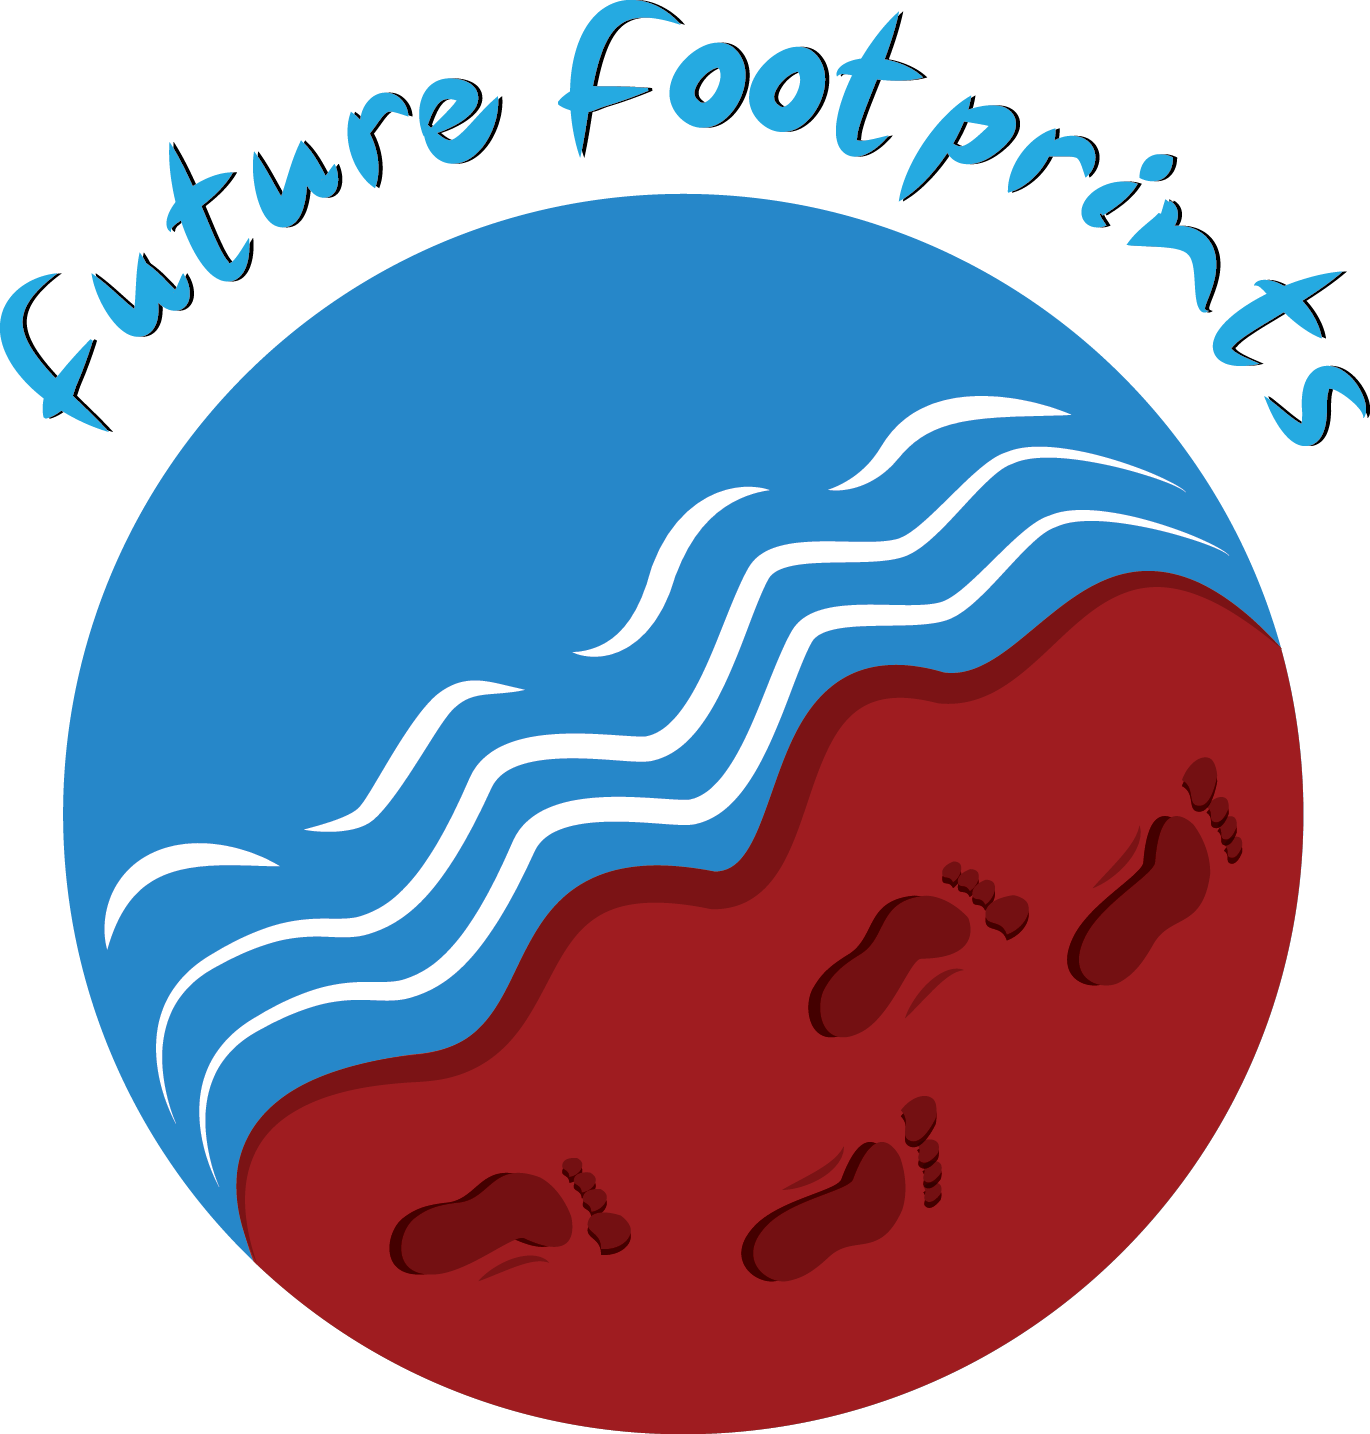 Future Footprints Logo